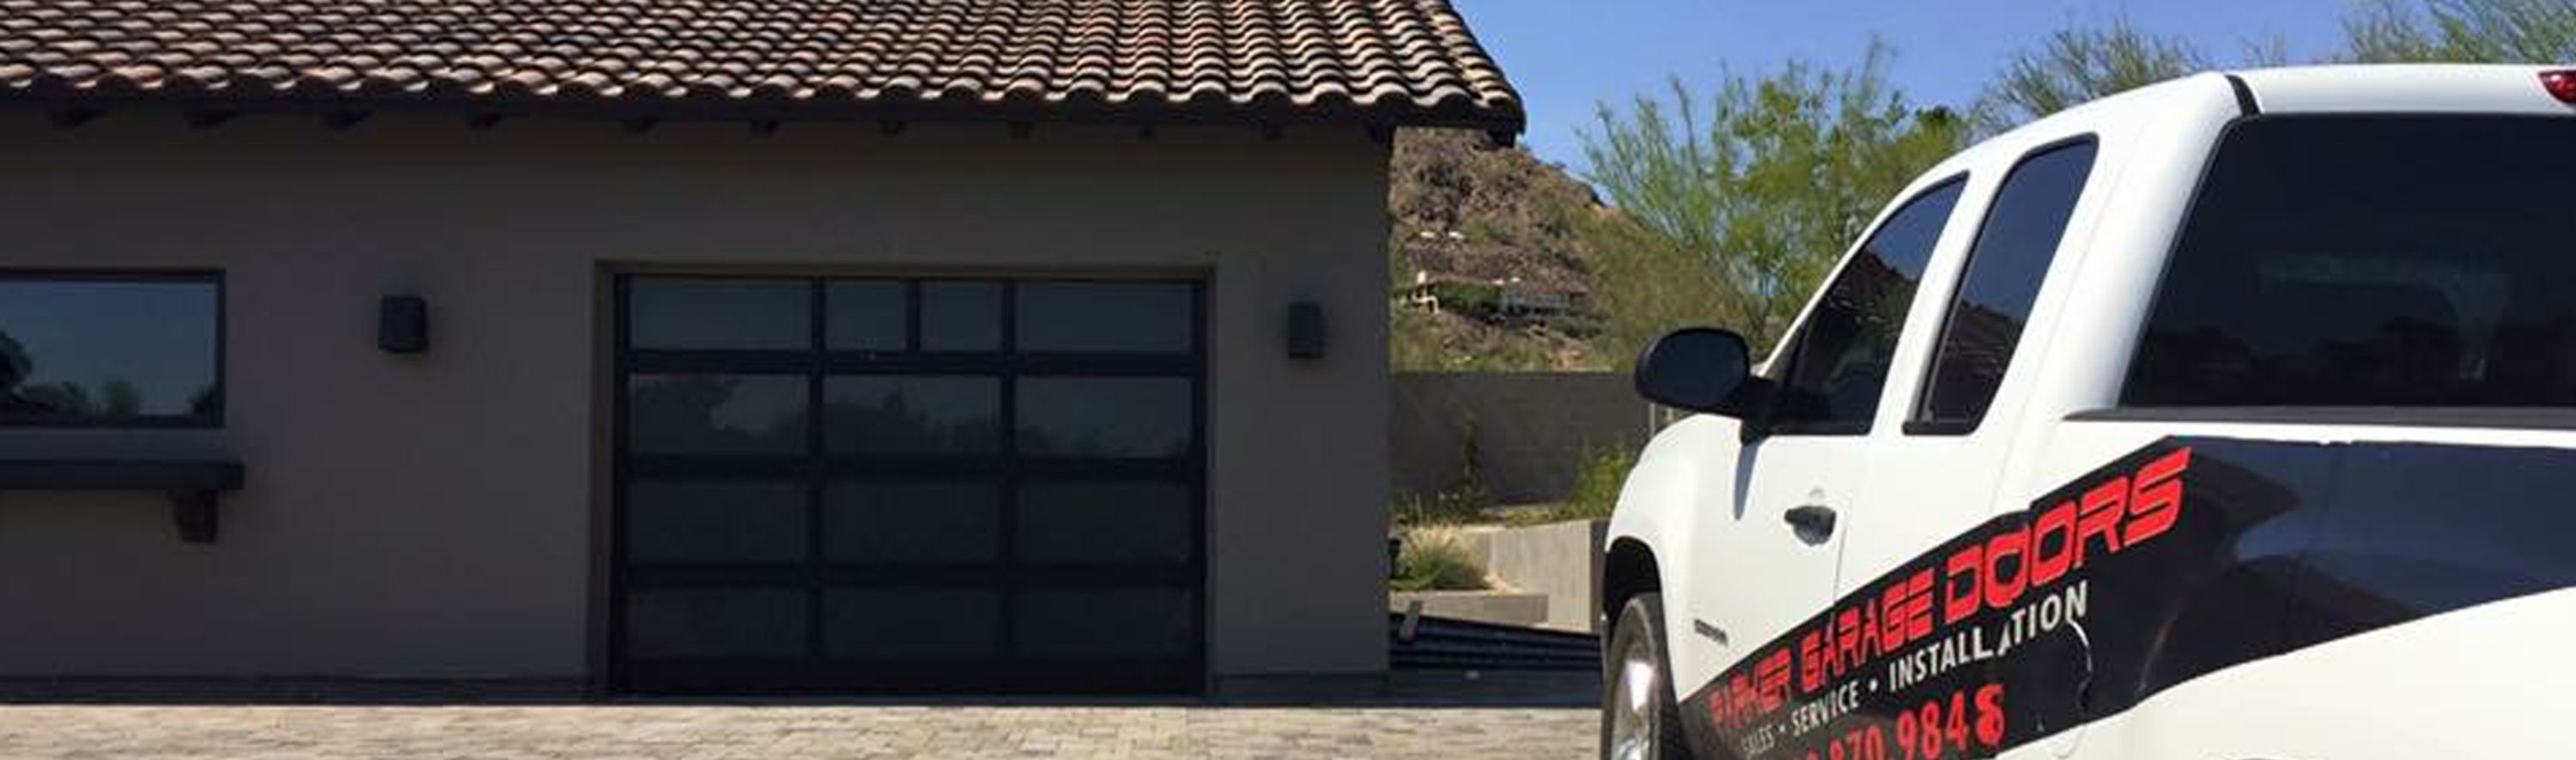 Shop Garage Doors Here & Lake Havasu Garage Door Repair \u2013 Parker Garage Doors